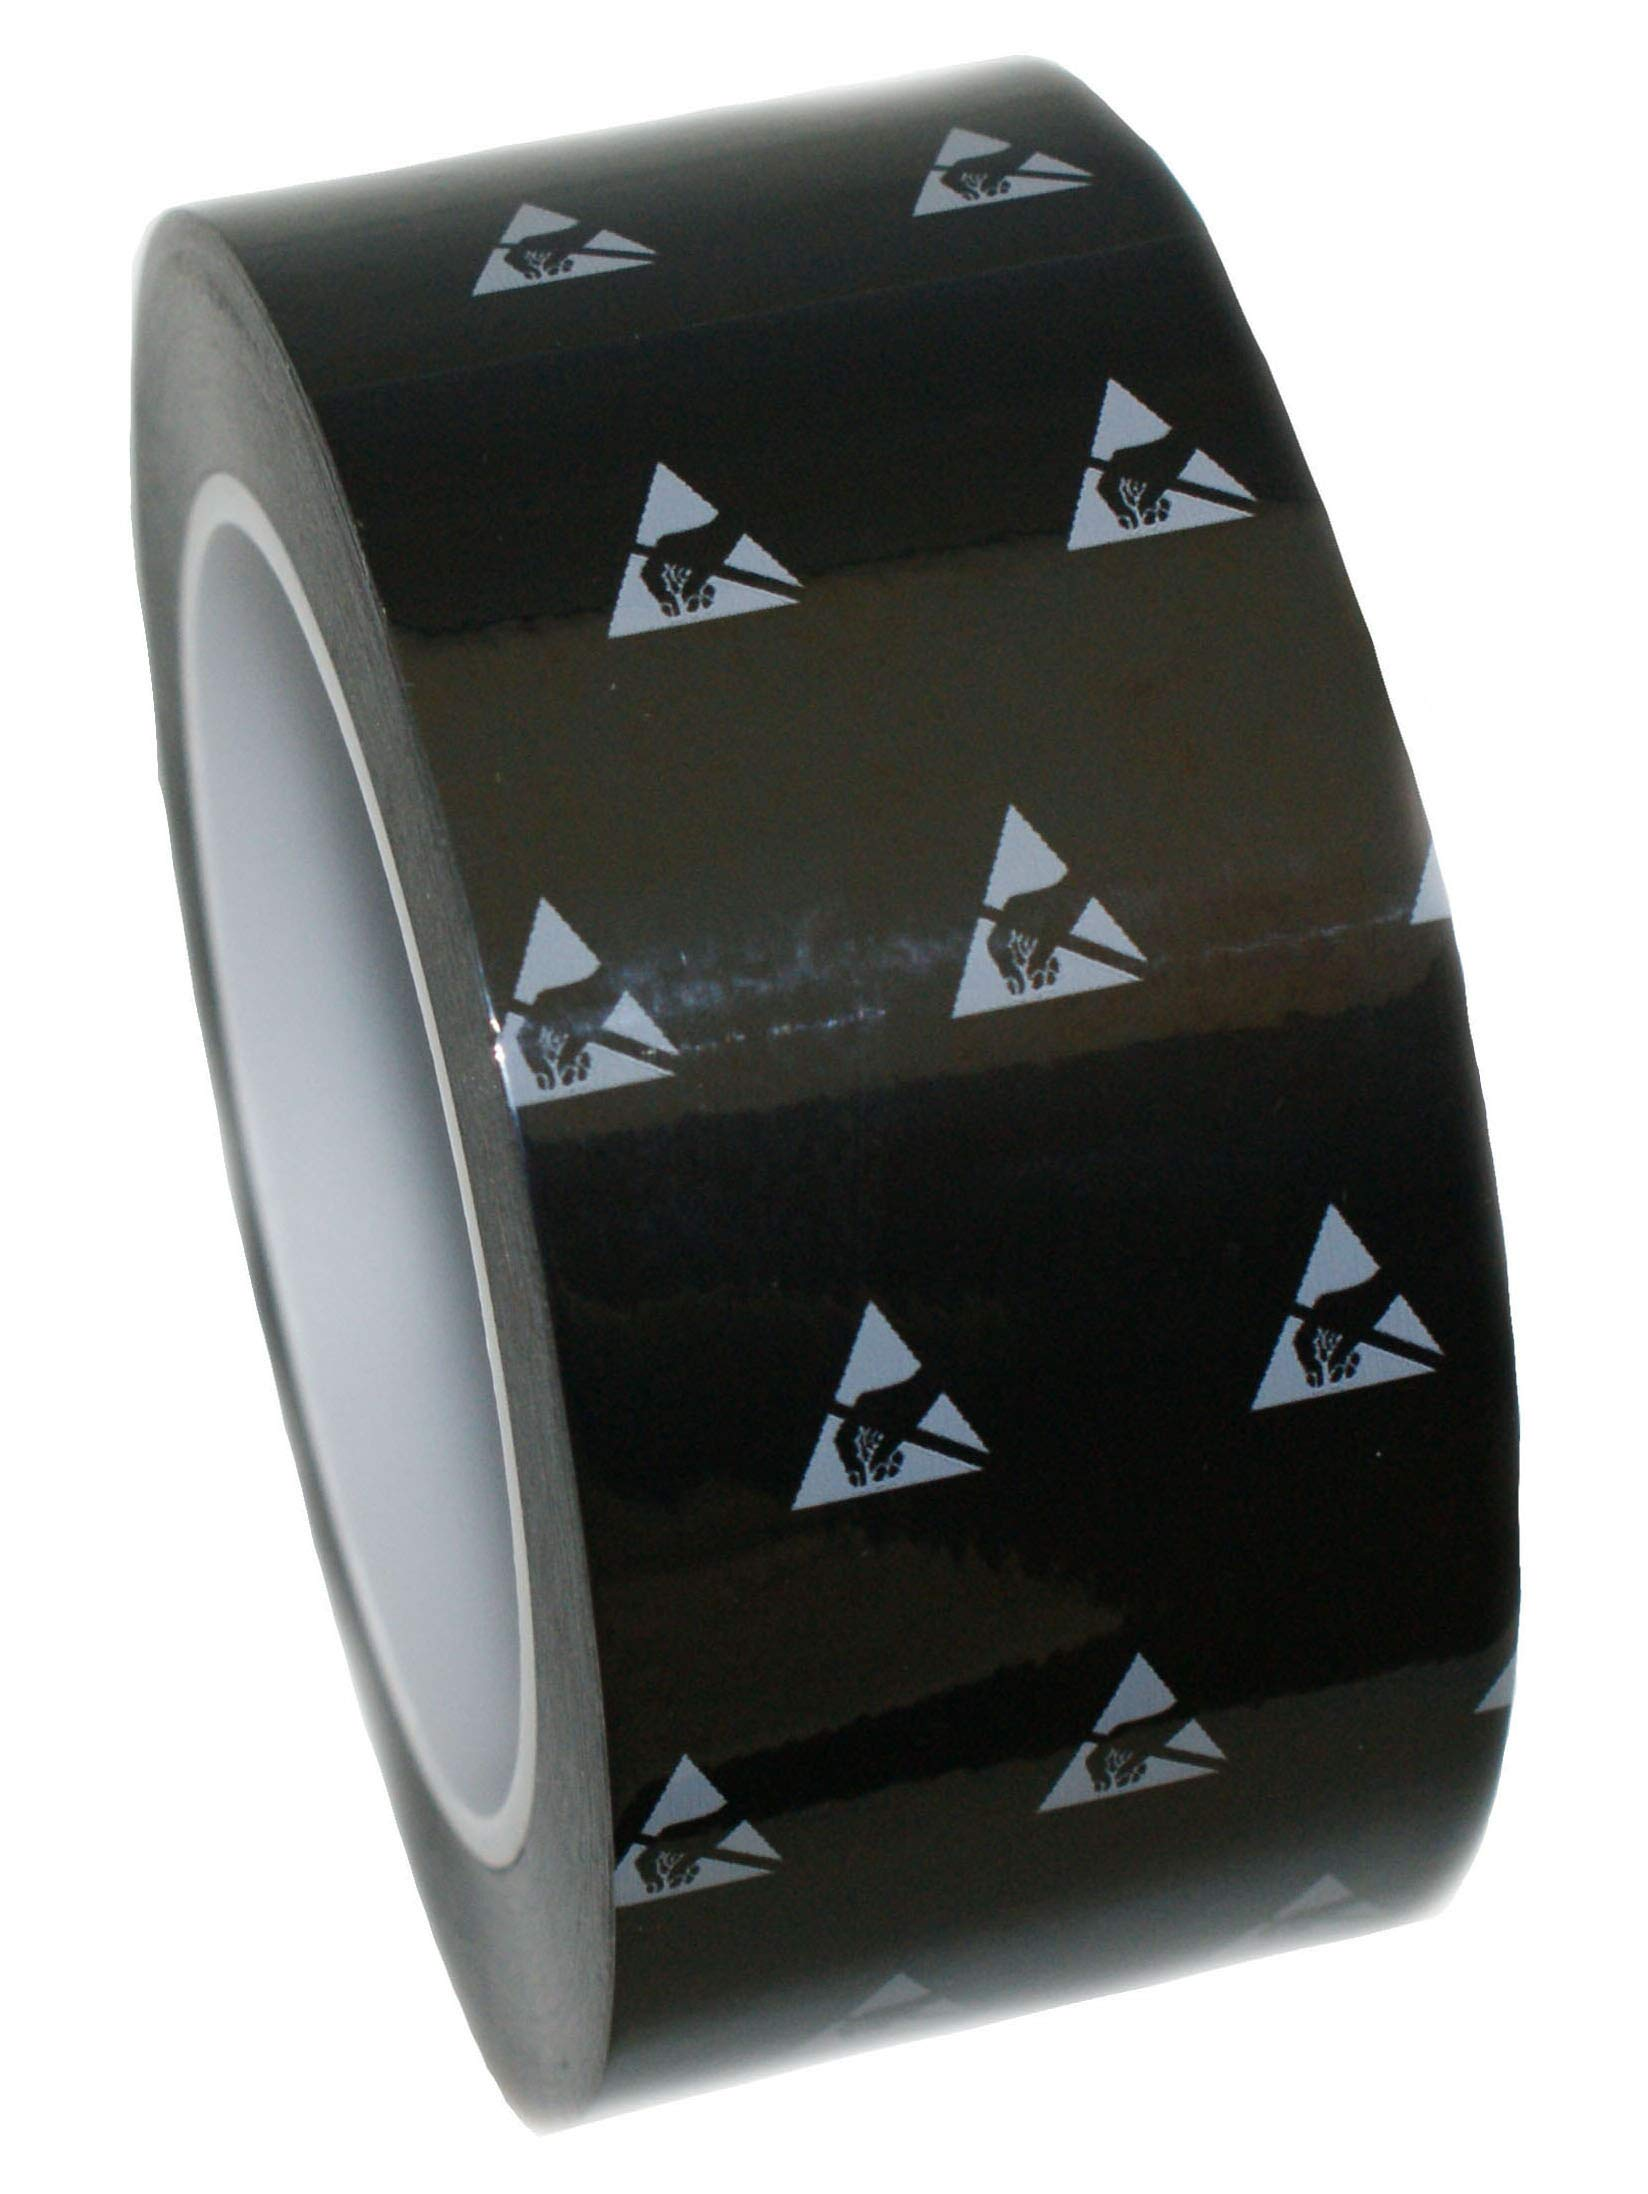 1 Roll UltraTape 2265 Anti-Static Cleanroom Marking Tape | ESD S20.20 and ISO Class 7-8 Compliant | Classic Clean | Black | 2 Inch | 0265BK200-P3S